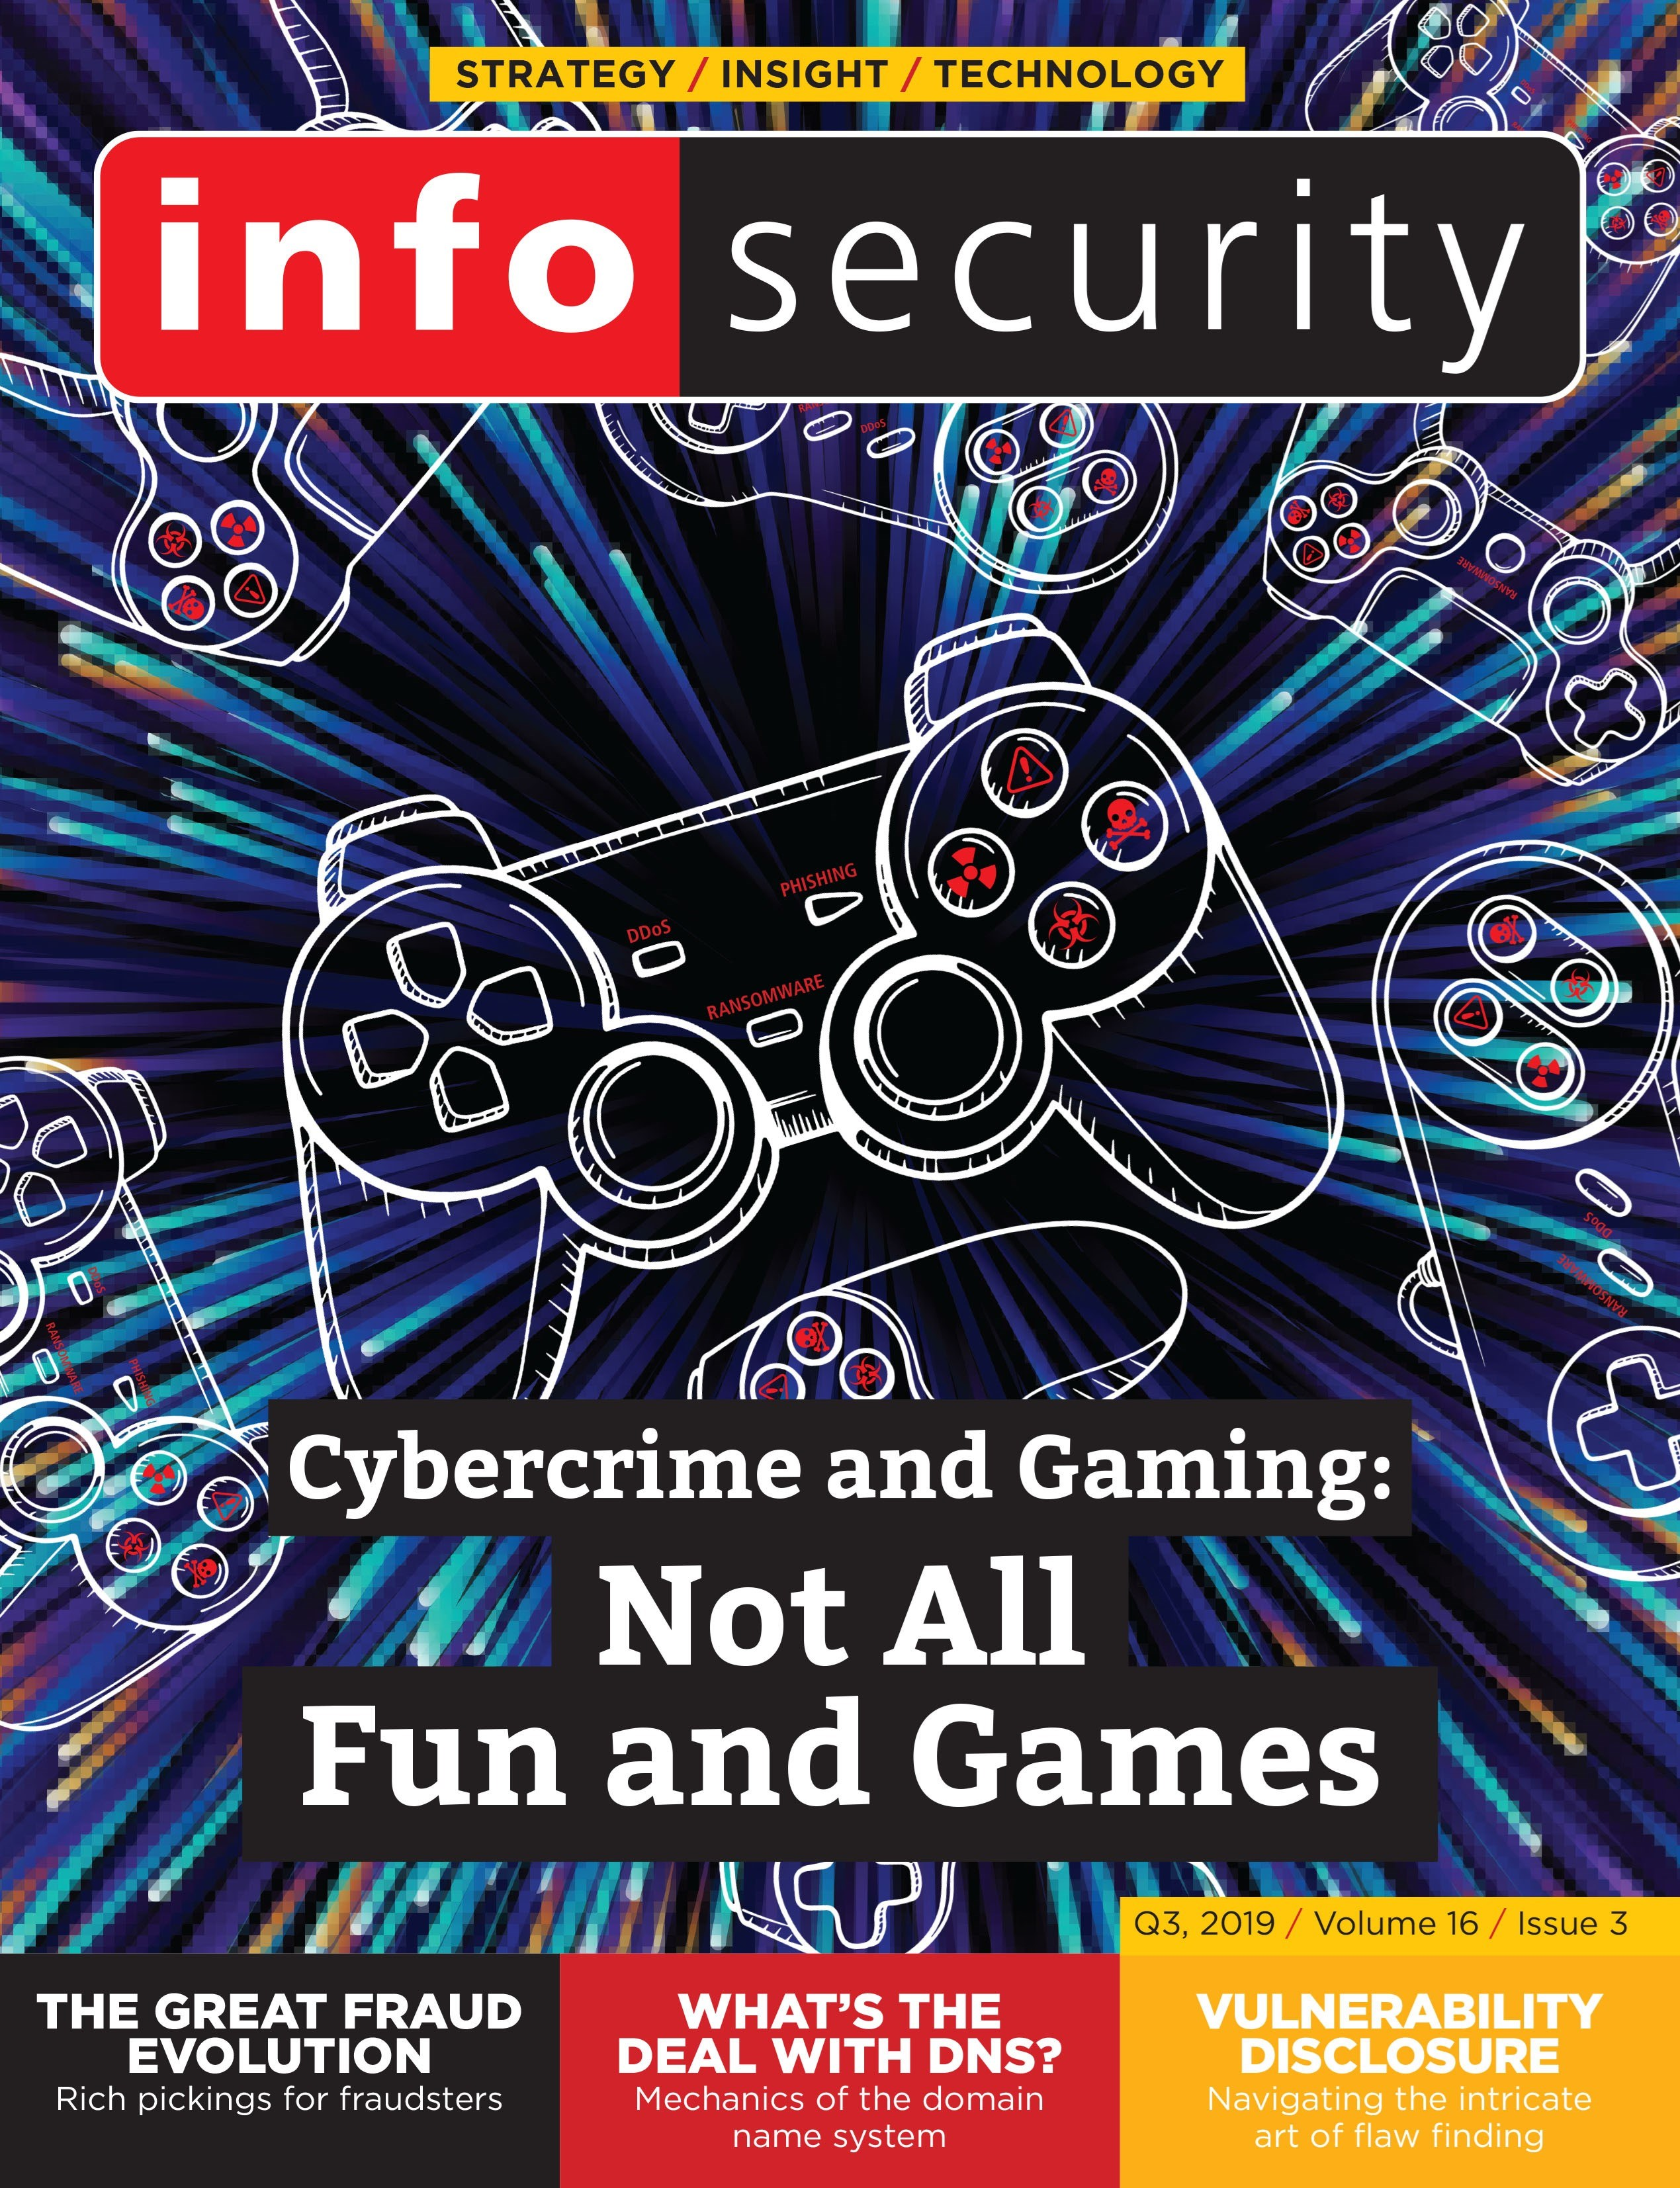 Infosecurity Magazine, Digital Edition, Q3, 2019, Volume 16, Issue 3